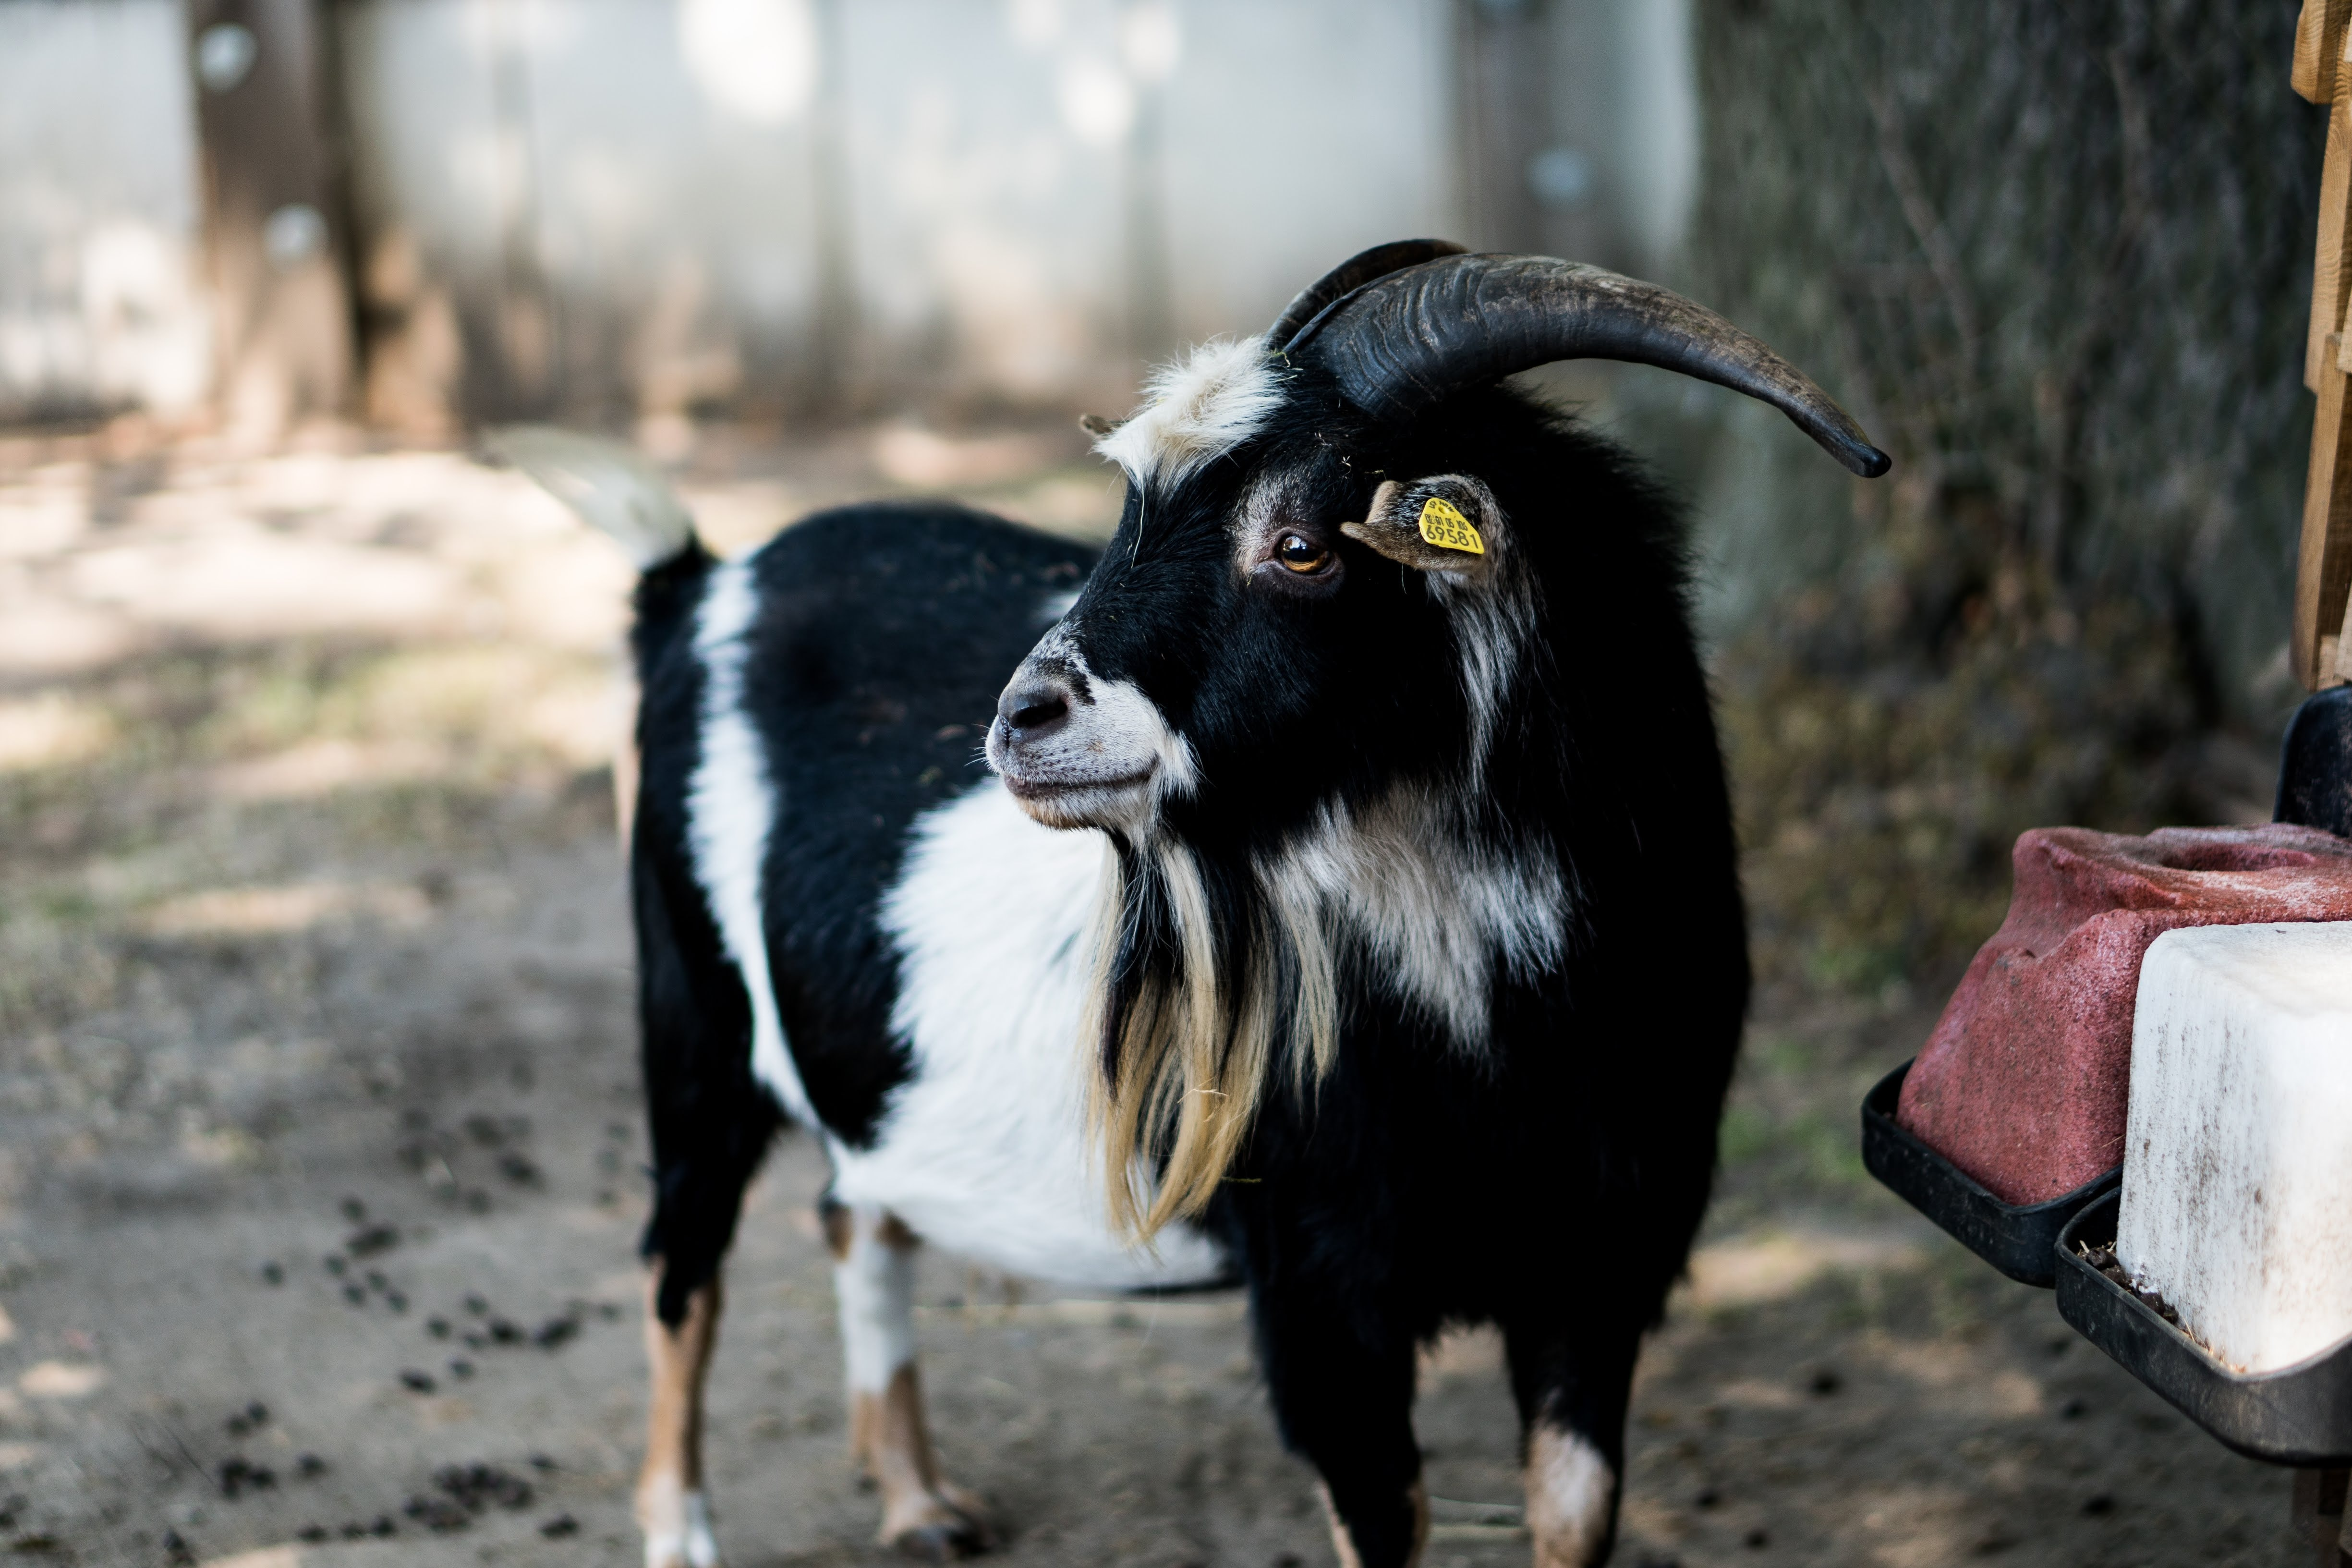 shallow focus photography of black and white goat